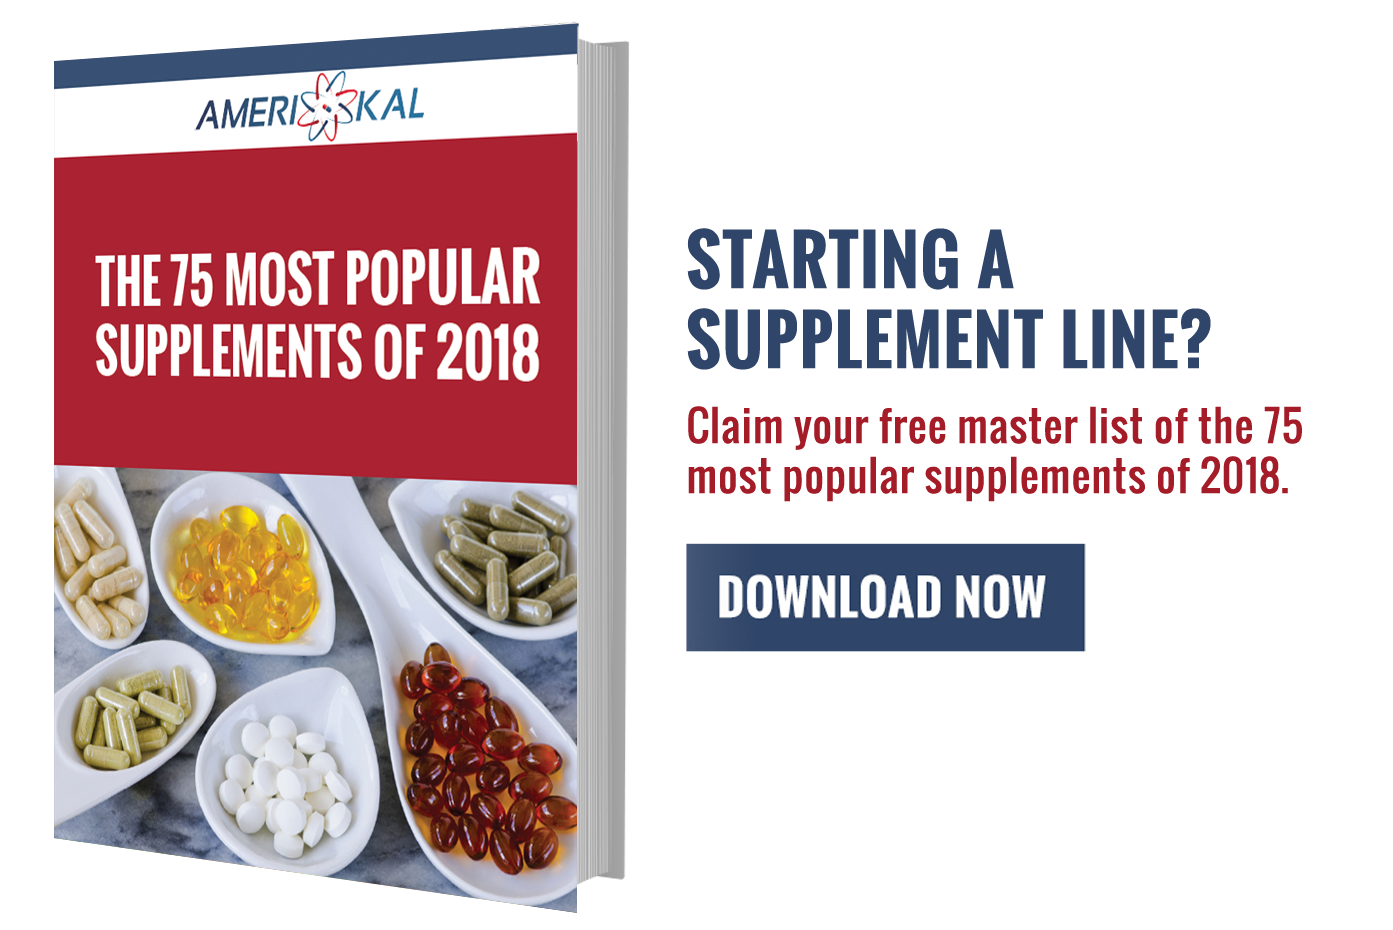 From Agamatine to Zinc, download our free master list of the 75 Most Popular Supplements of 2018 to uncover the perfect ingredients to your next formula.